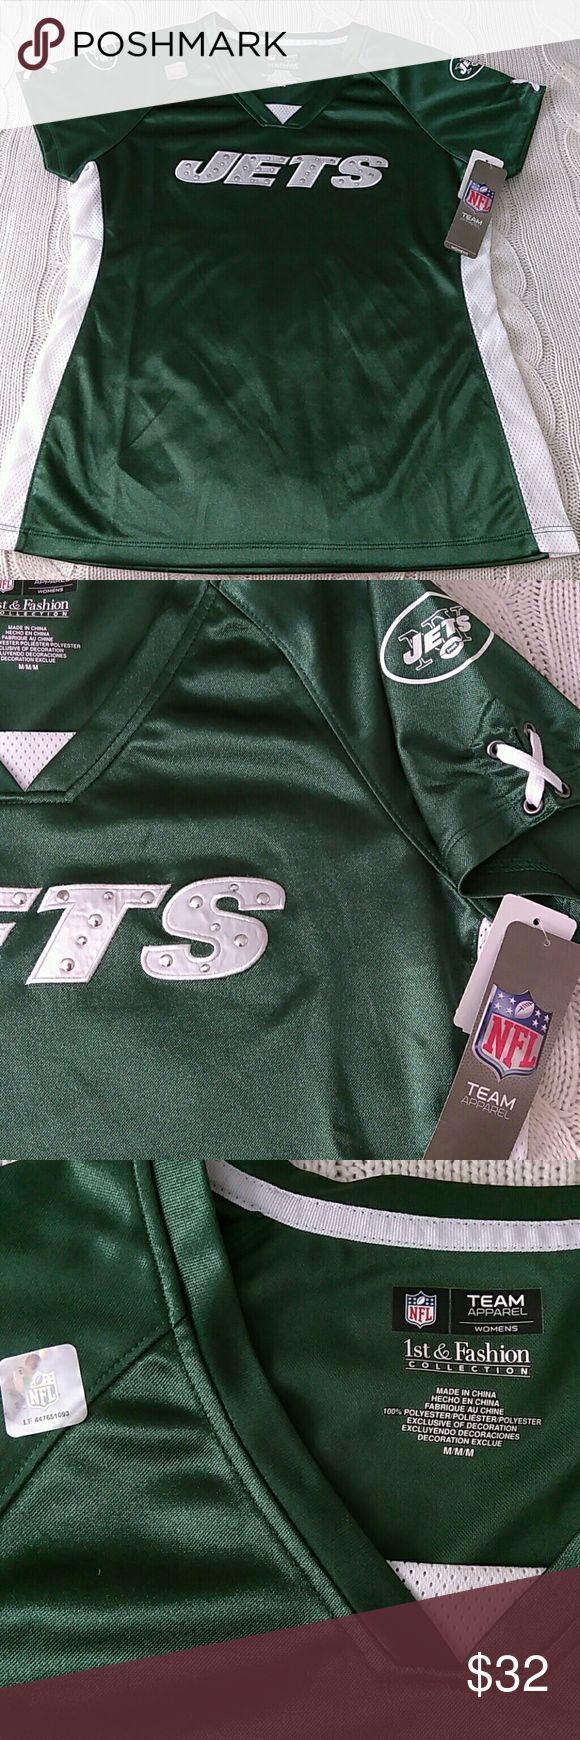 NFL Apparel NY Jets Jersey NFL Apparel New York Jets Women's Draft Me V Shimmer Jersey. Silver studs. Lace up sleeves. V neck. NFL  Team Apparel Tops Tees - Short Sleeve